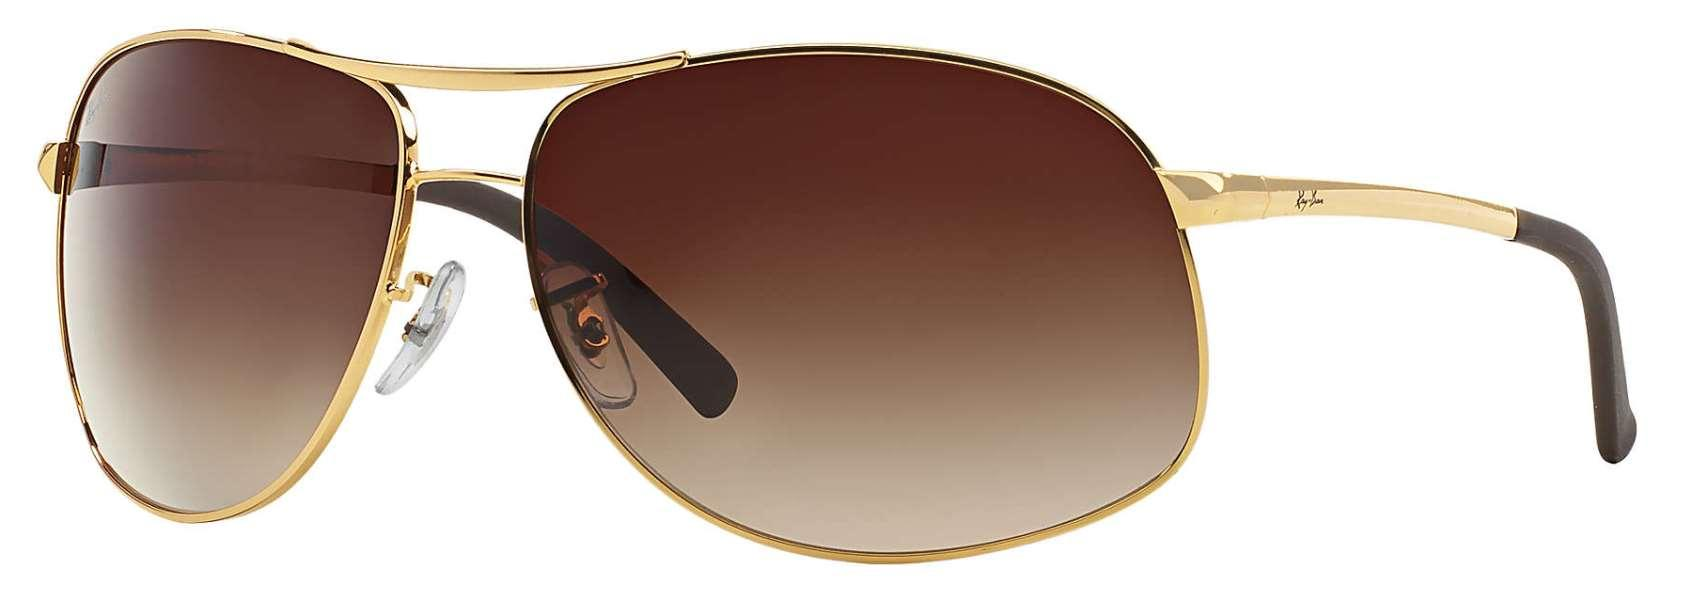 8cfb87bb0 New Ray Ban Rb 3387 001 « One More Soul